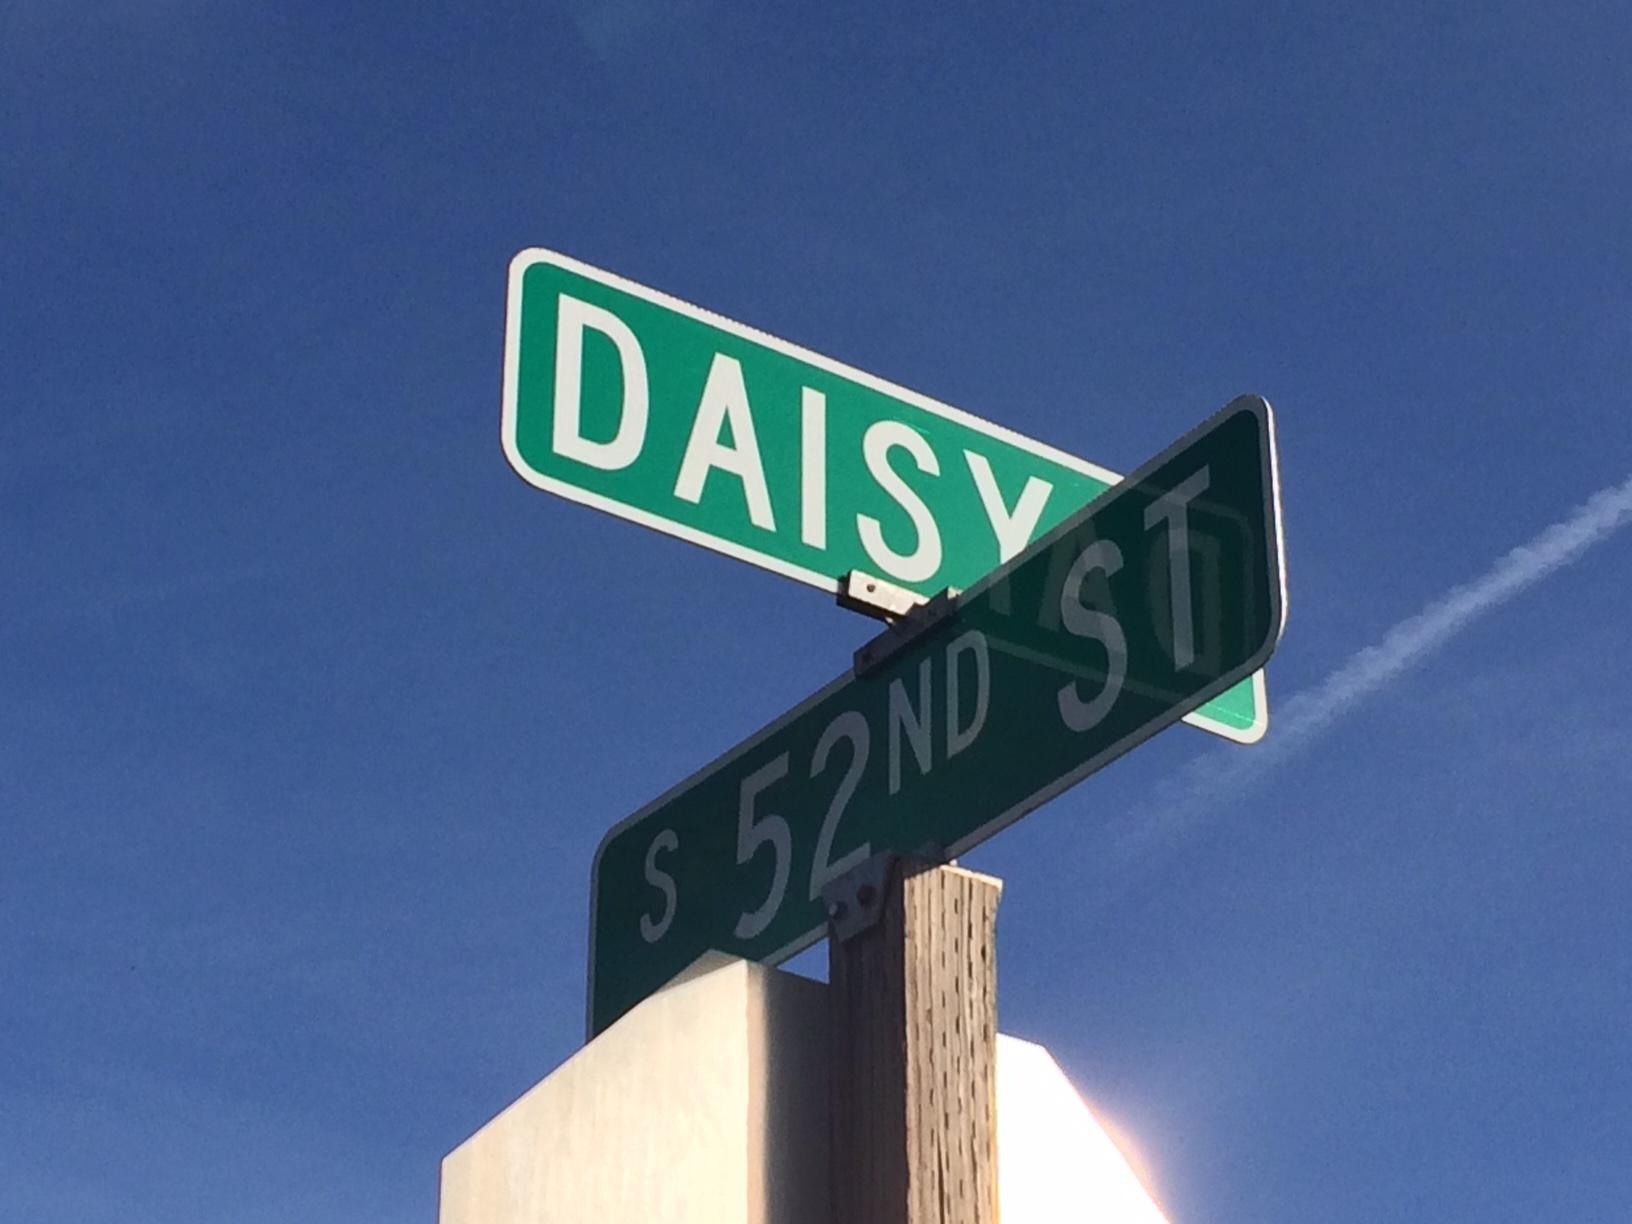 The break-in on the 4900 block of Daisy Street was one of two daytime burglaries reported Monday in Springfield. (SBG)